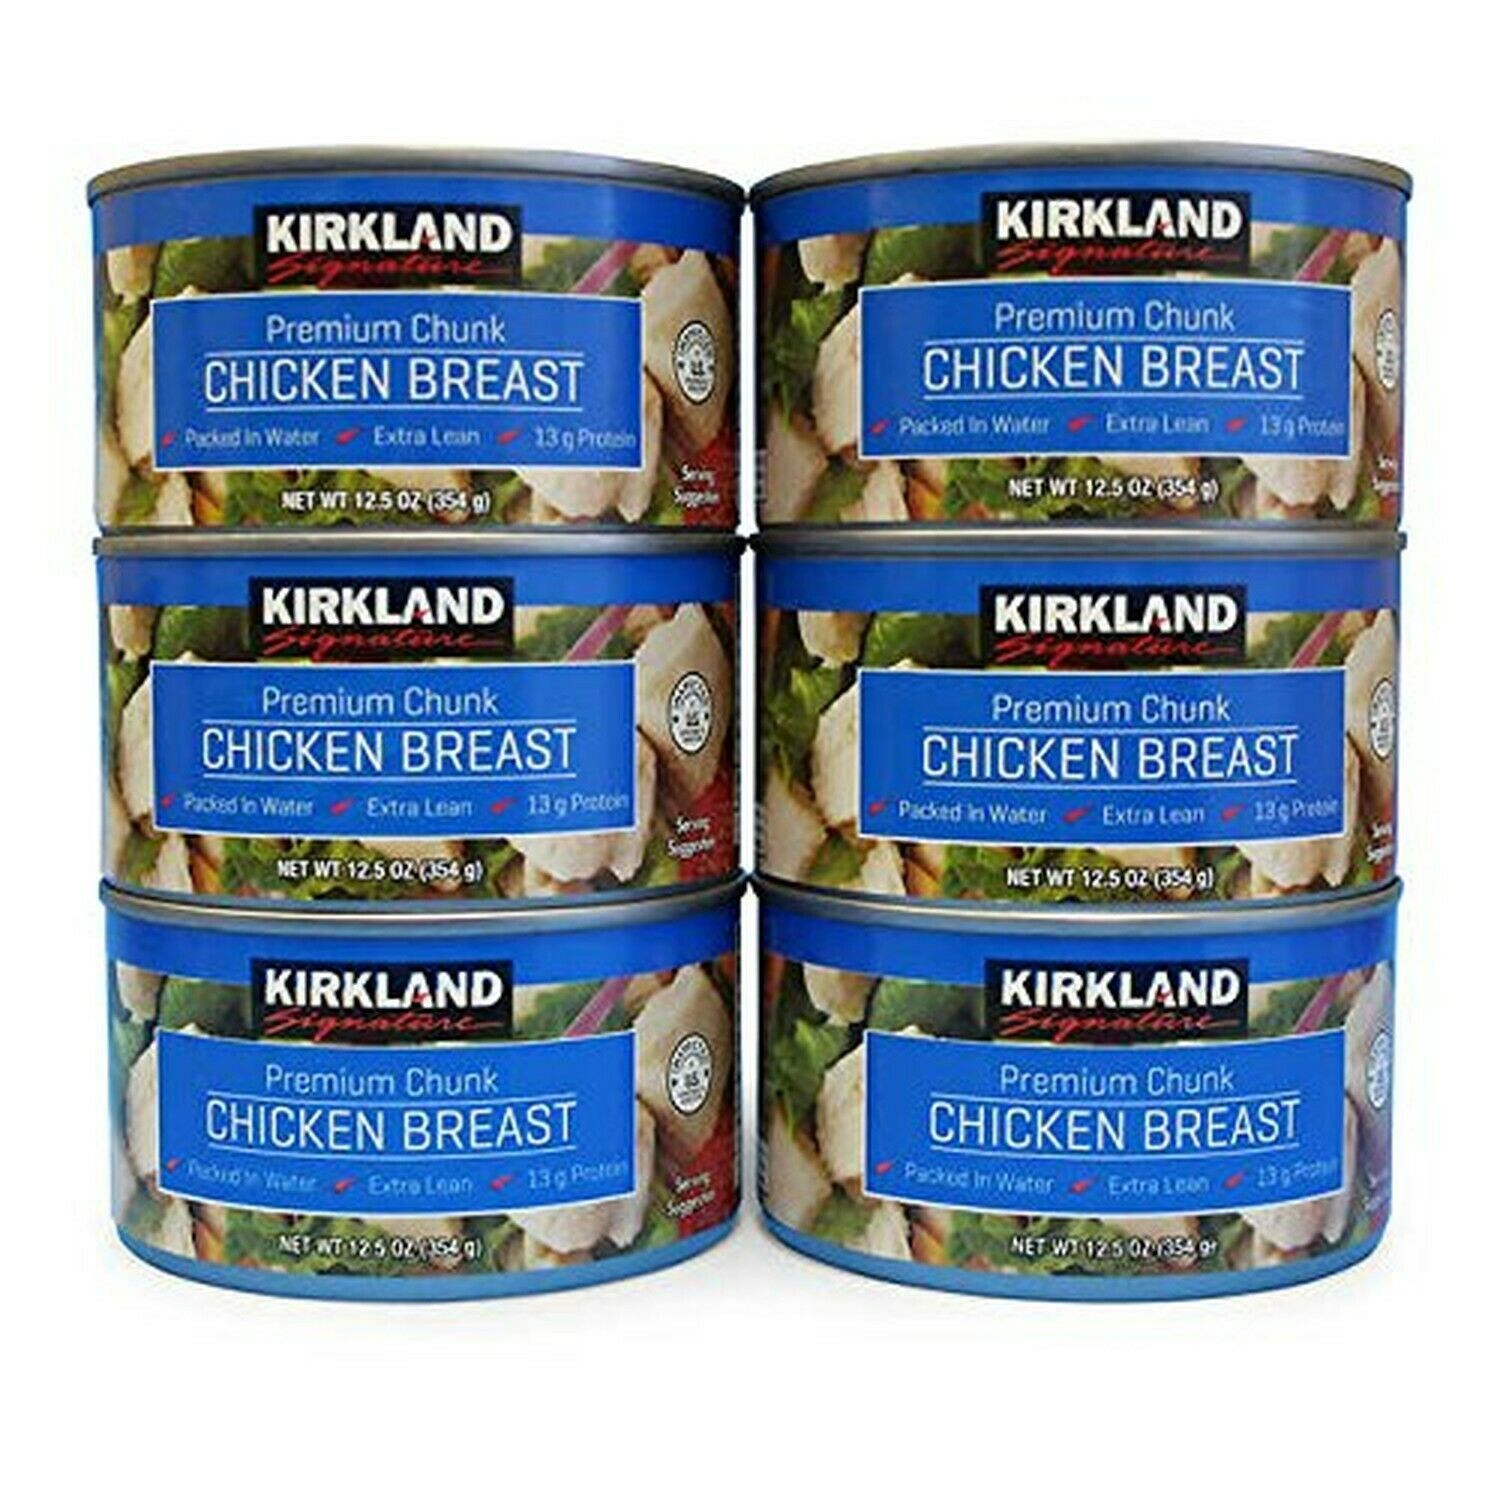 Primary image for Kirkland Signature Premium Chunk Chicken Breast Cans, 12.5 oz, 6 ct